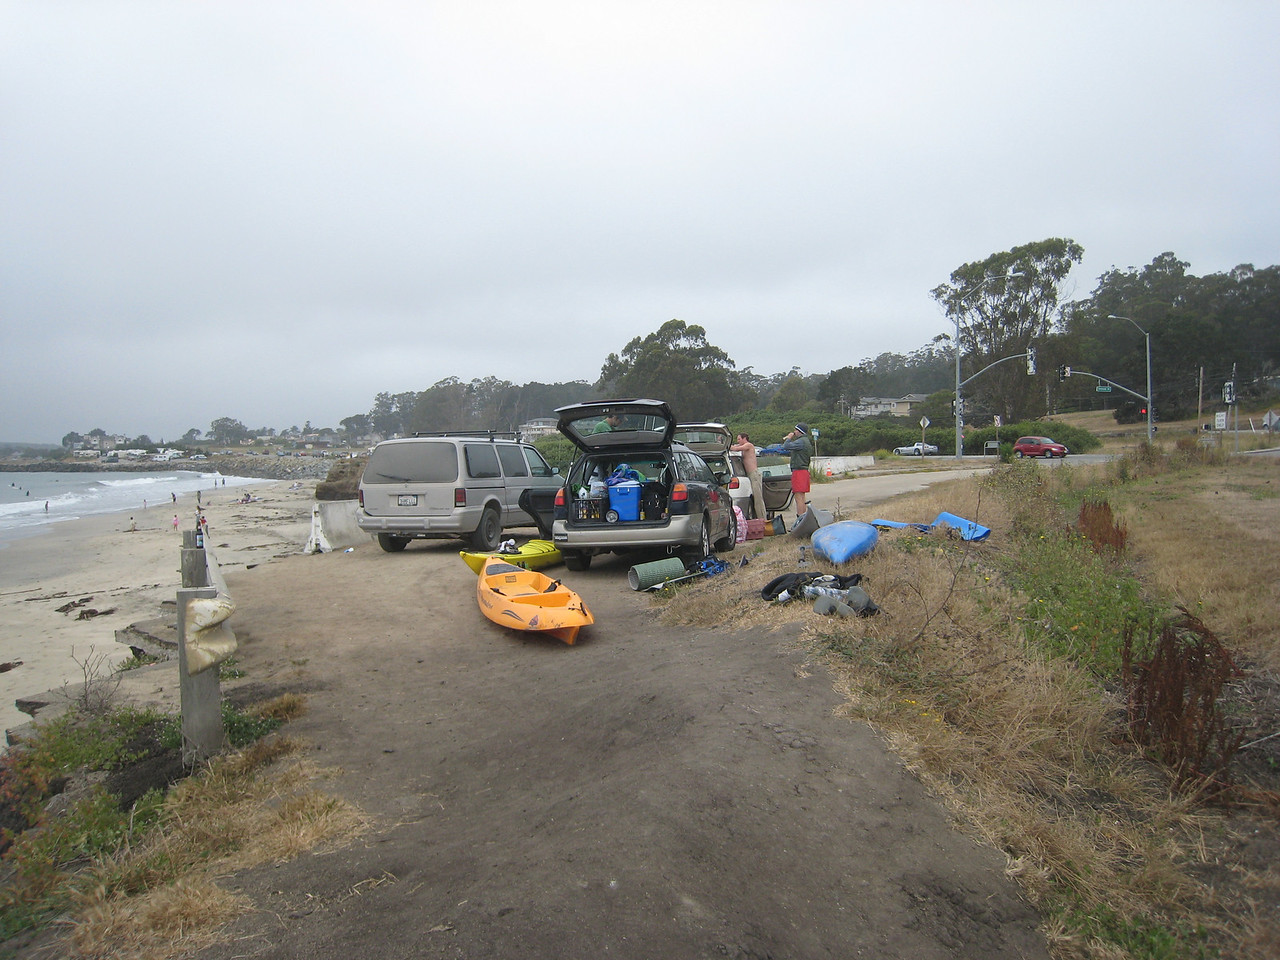 After having a great time kayak surfing, we packed up around 1, as Funk was due at a BBQ, and I was due at a wedding.